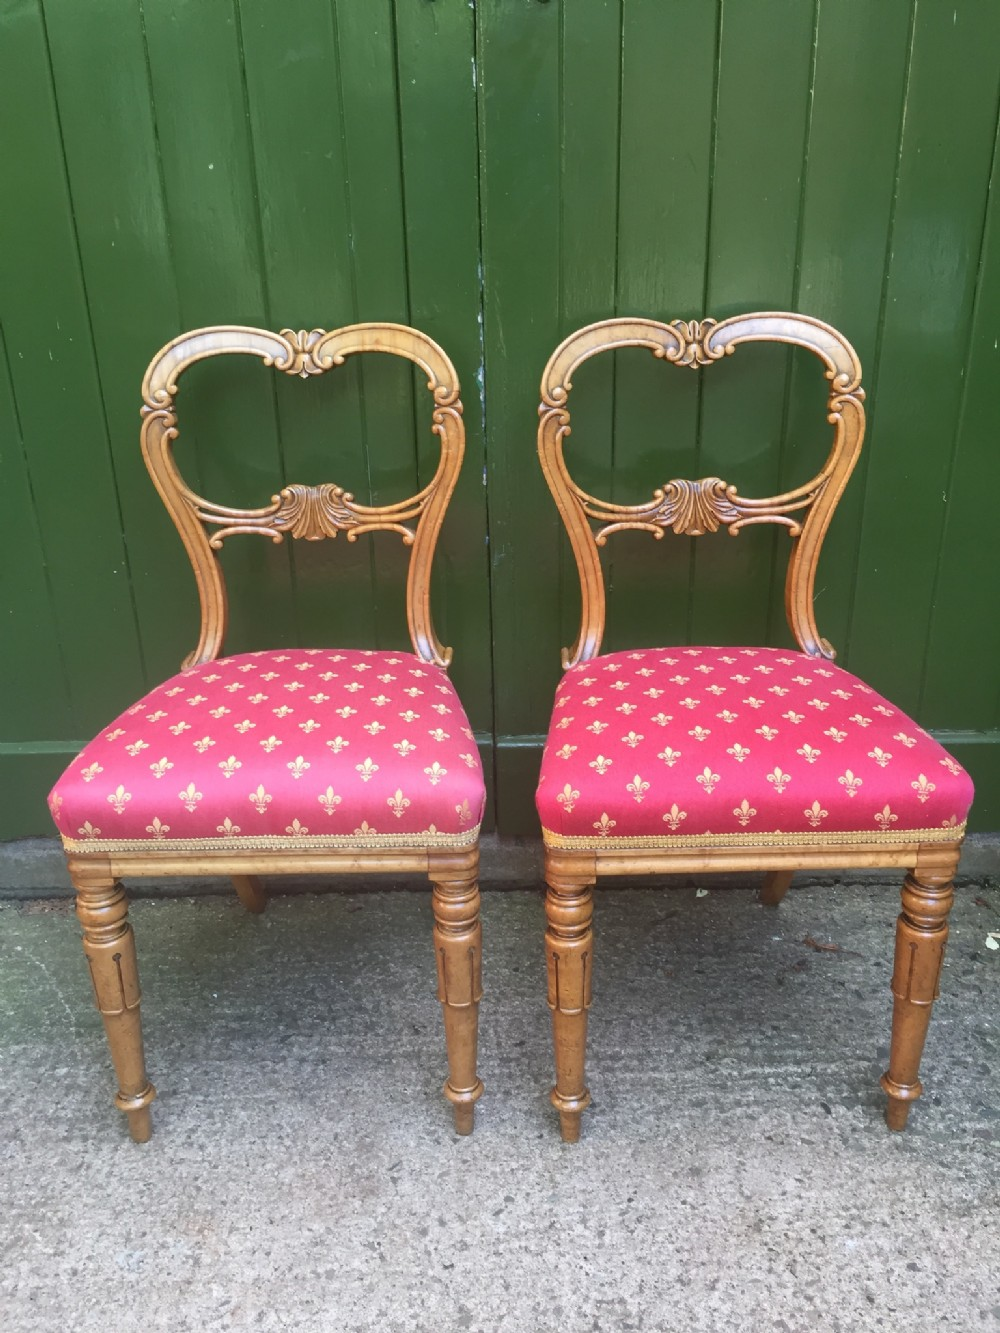 pair of early c19th william iv period maple bedroom or occasional chairs in the manner of gillows